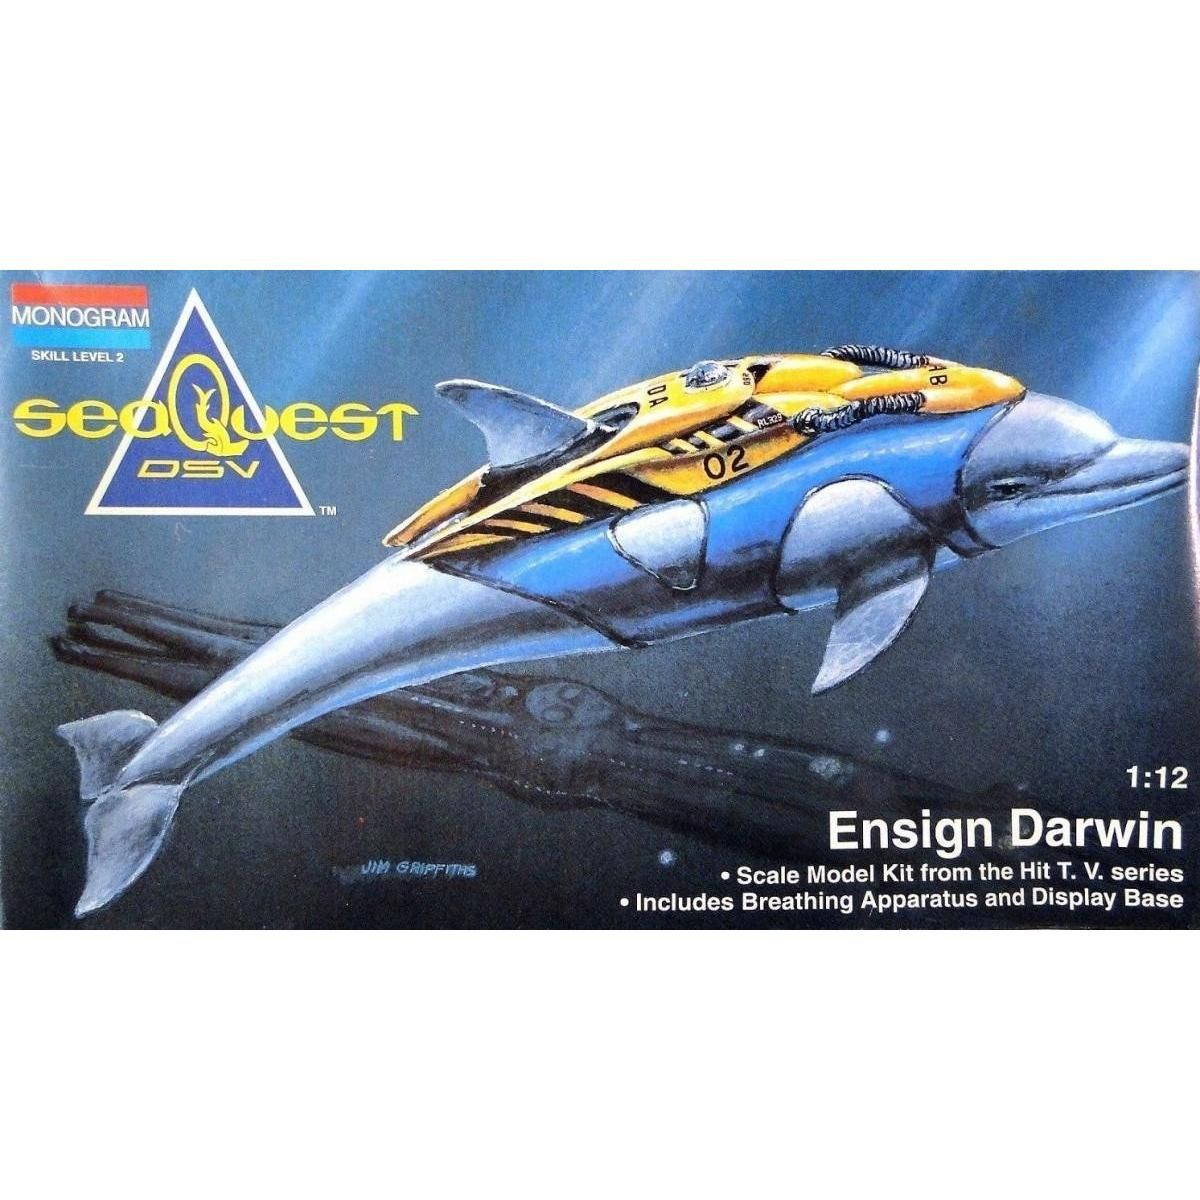 Monogram 1/12 Ensign Darwin model kit   Products   Pinterest   Products